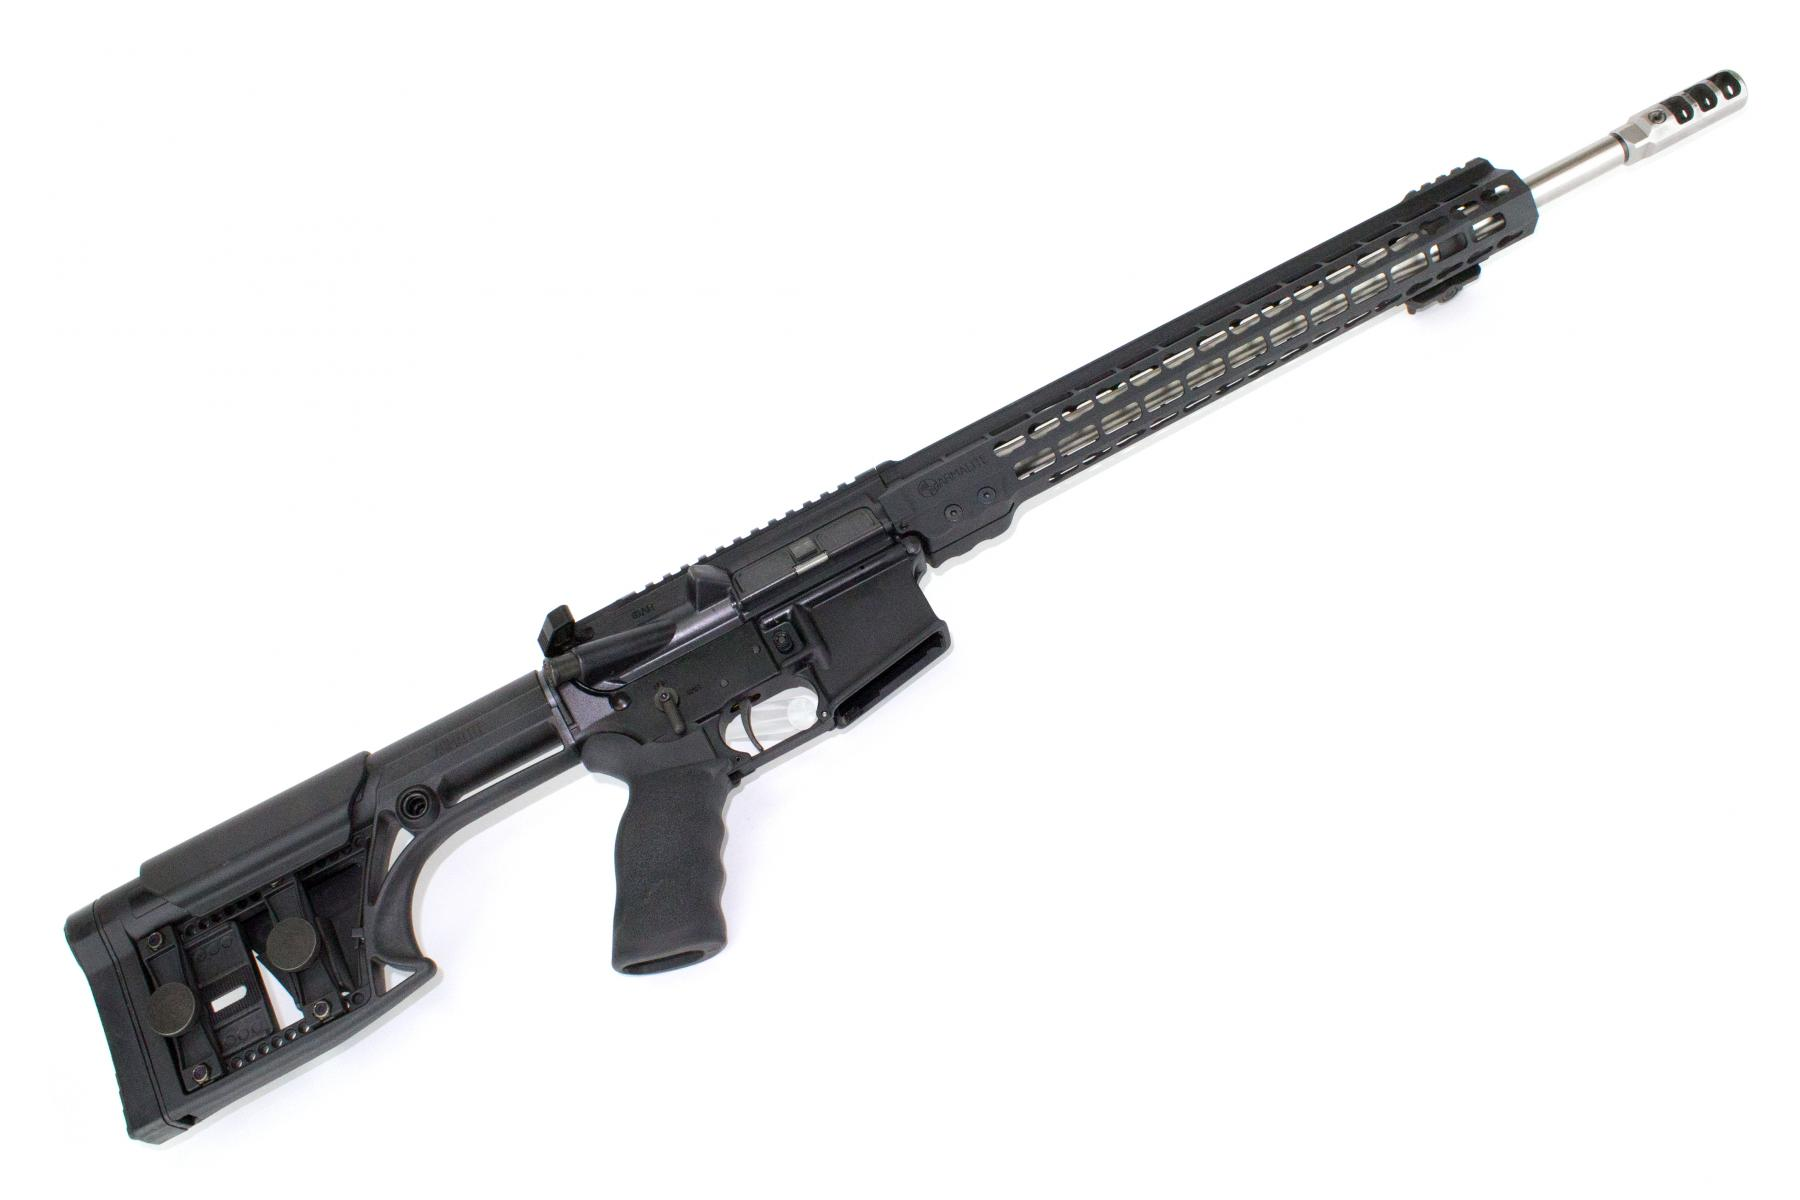 "CONSIGNED Armalite M-15 3-Gun Rifle |223 Wylde 18"" 1:8 Twist Stainless Barrel, Timney 3Lb Trigger, 15"" Keymod Handguard, Luth-AR MBA-1 Stock, Tunable Muzzle Brake, Raptor Charging Handle, Original Box, 30 Round PMAG"